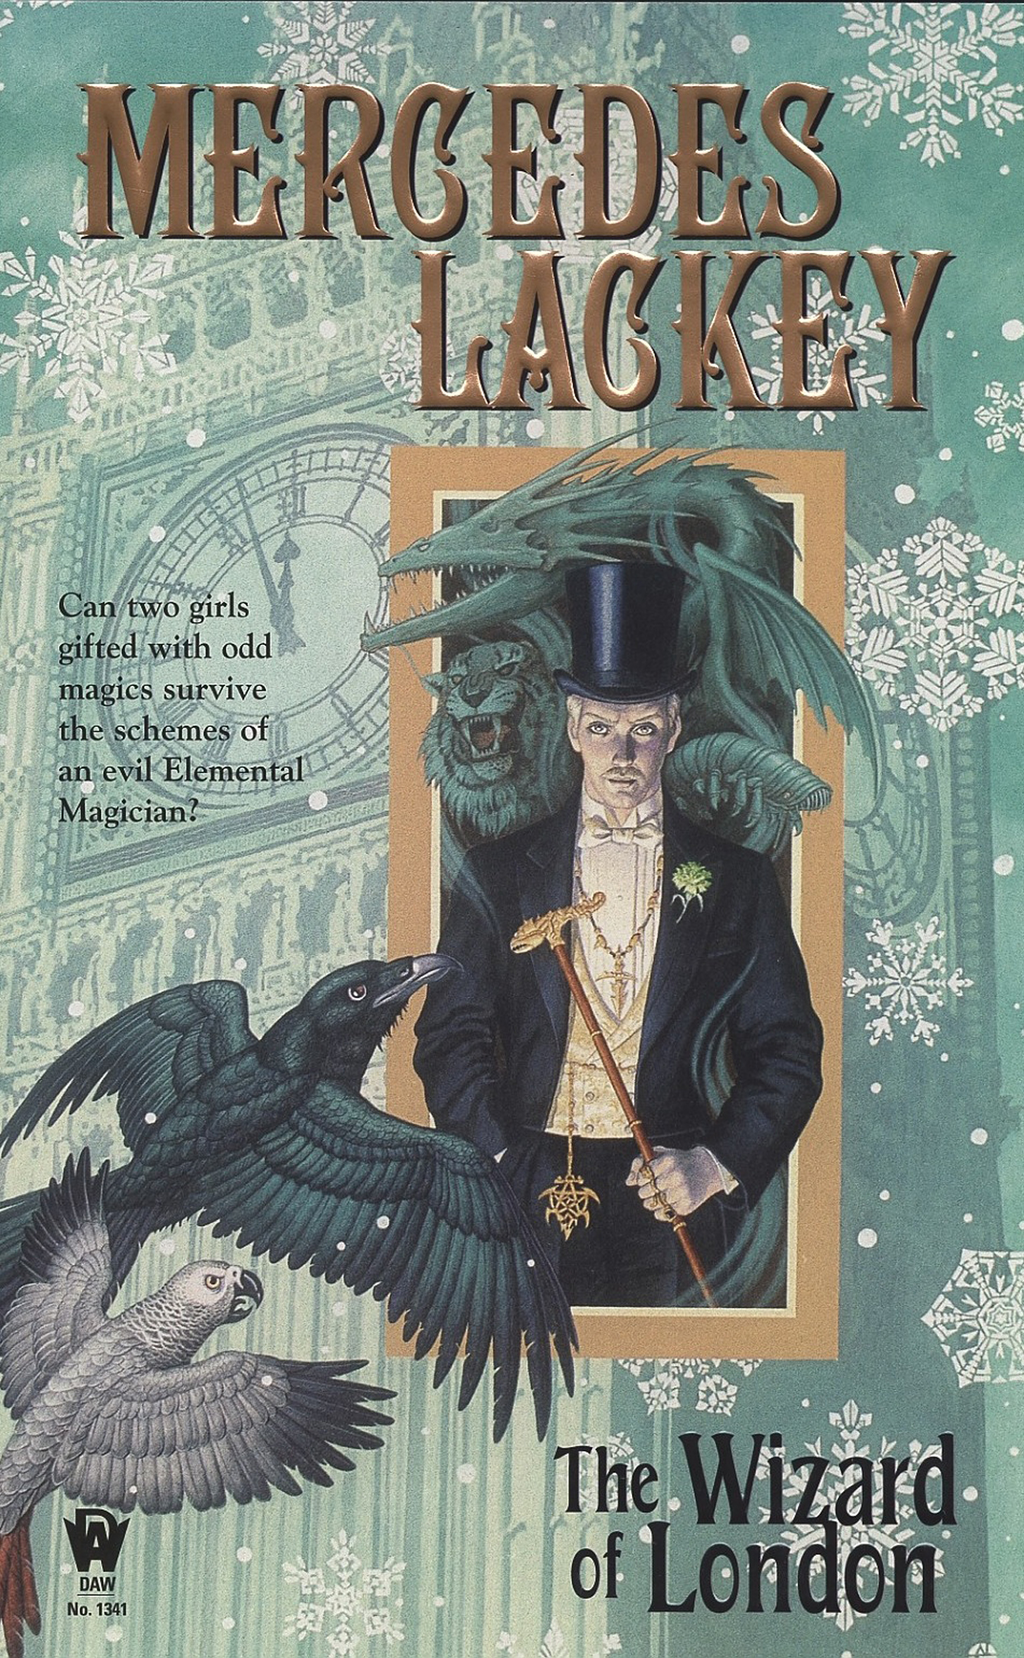 The Wizard of London: Elemental Masters #4 By: Mercedes Lackey